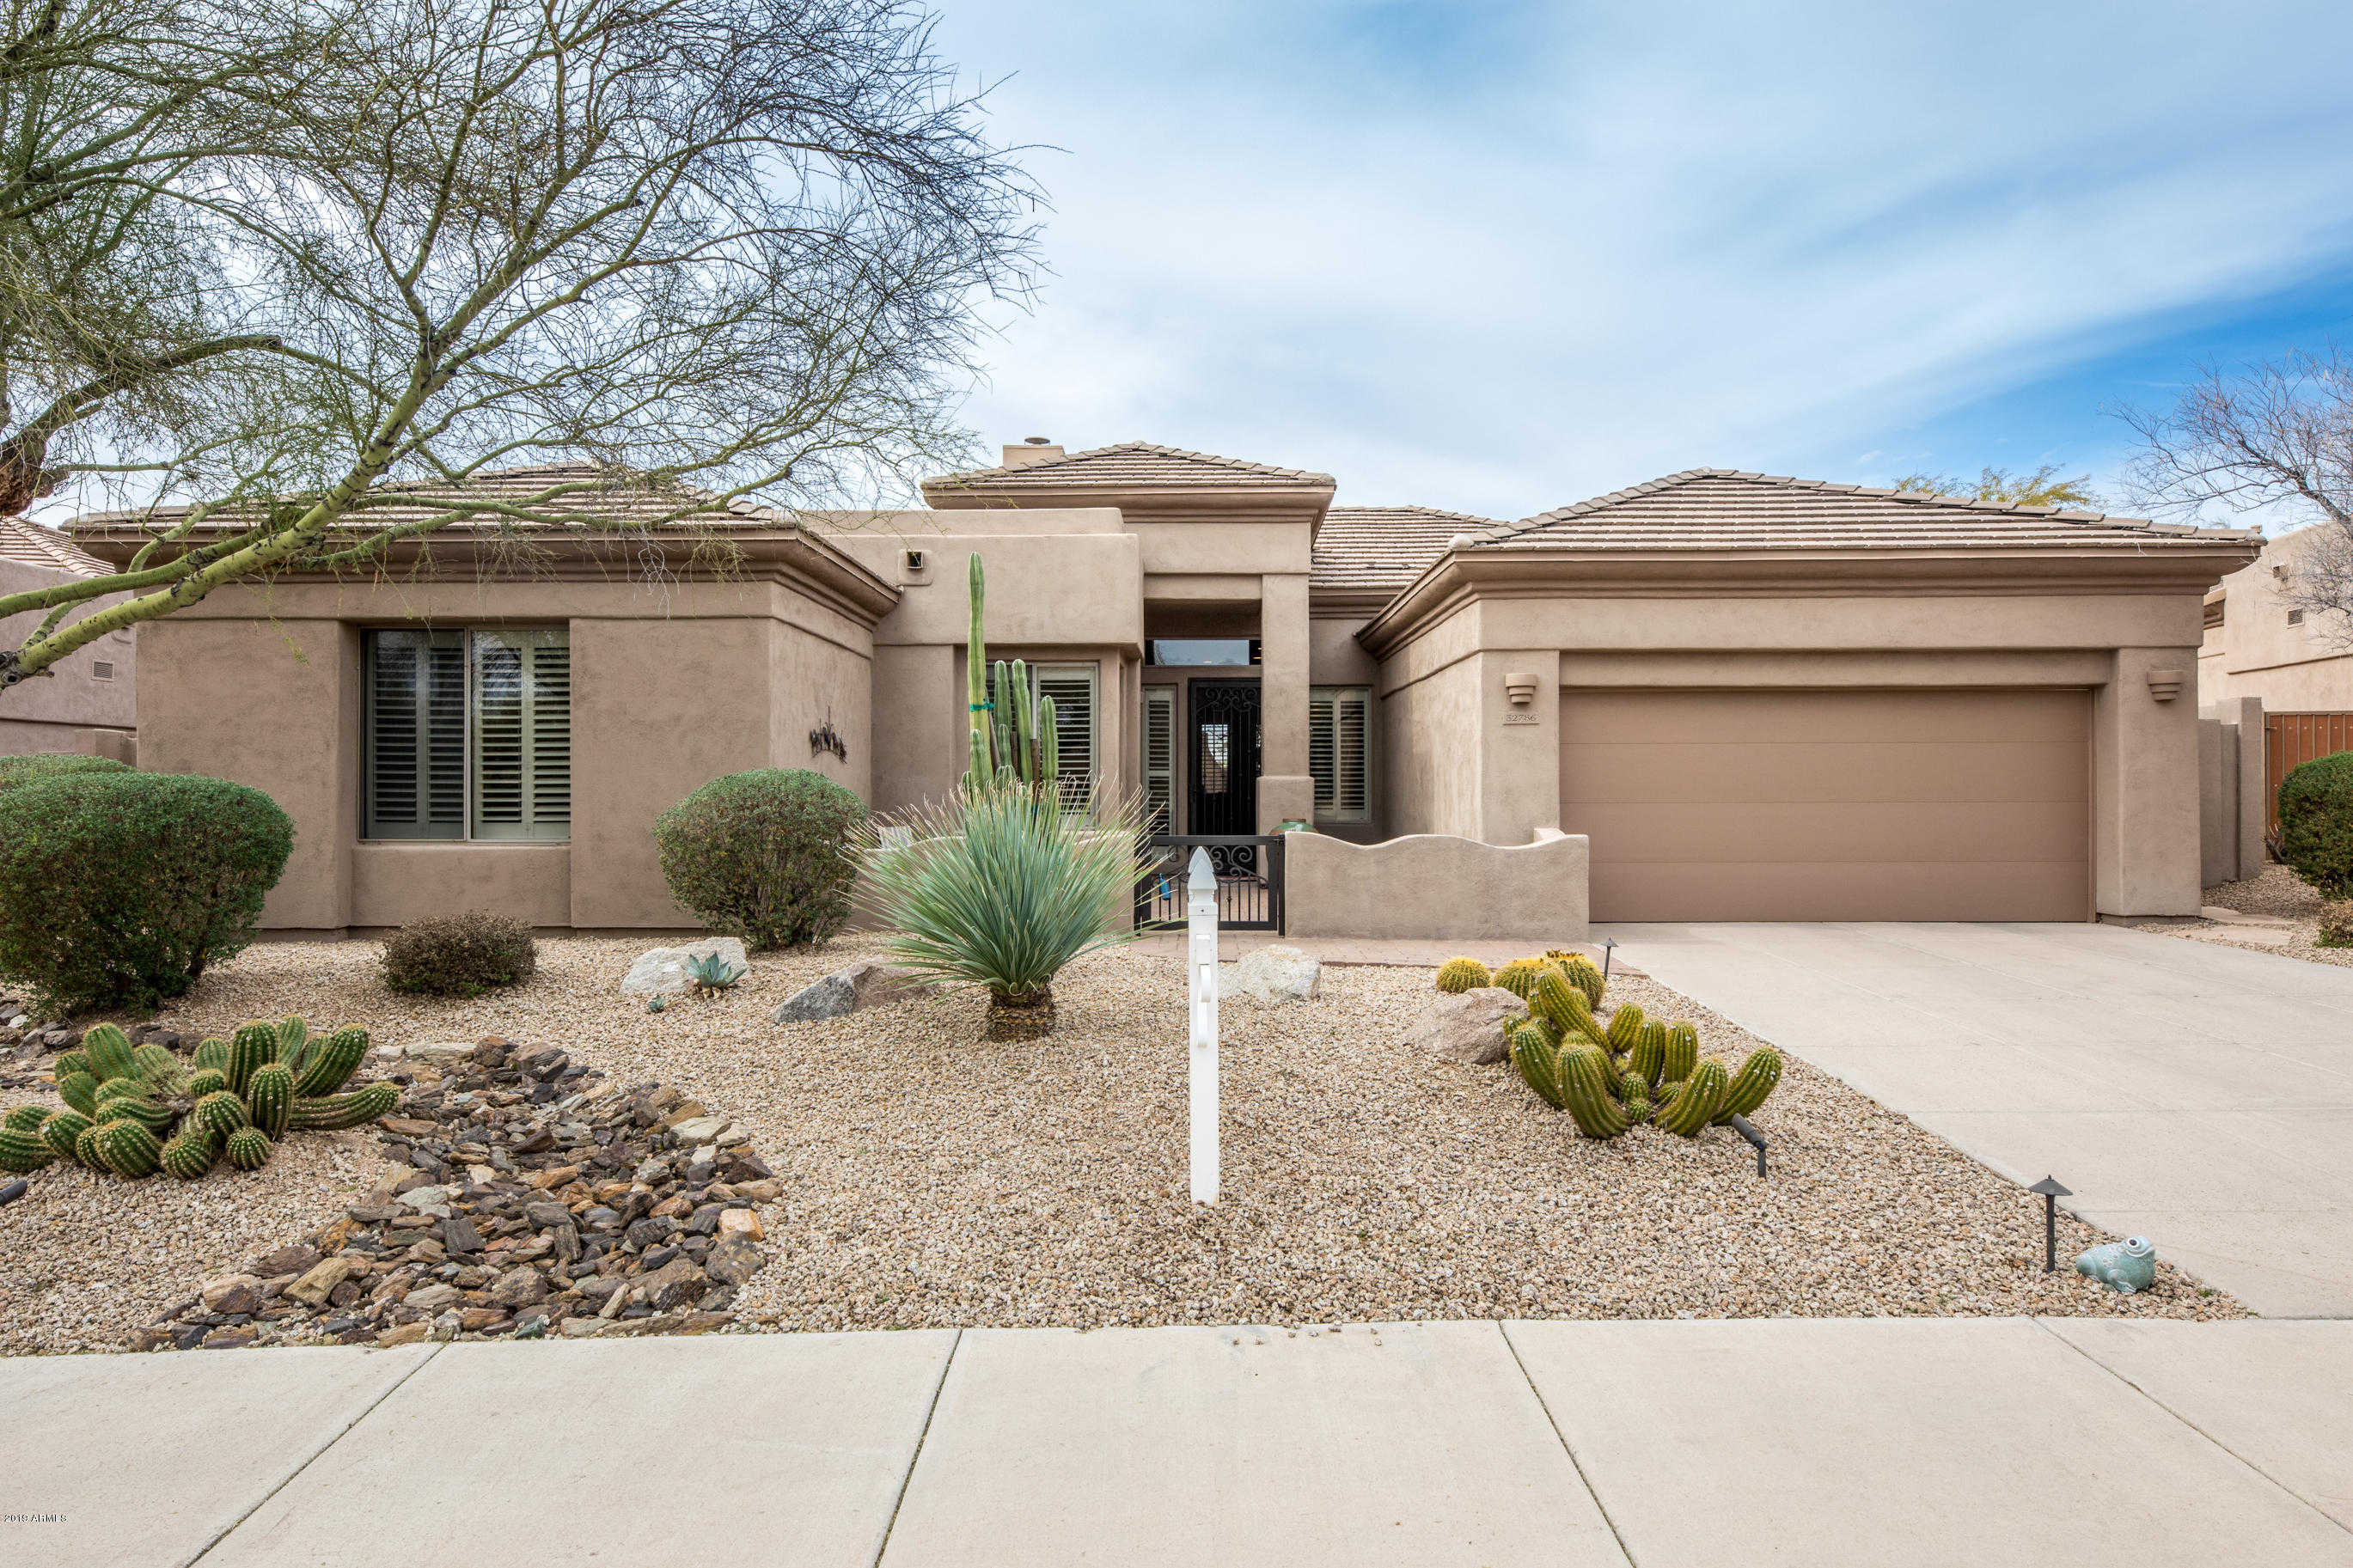 $579,900 - 3Br/2Ba - Home for Sale in Terravita, Scottsdale